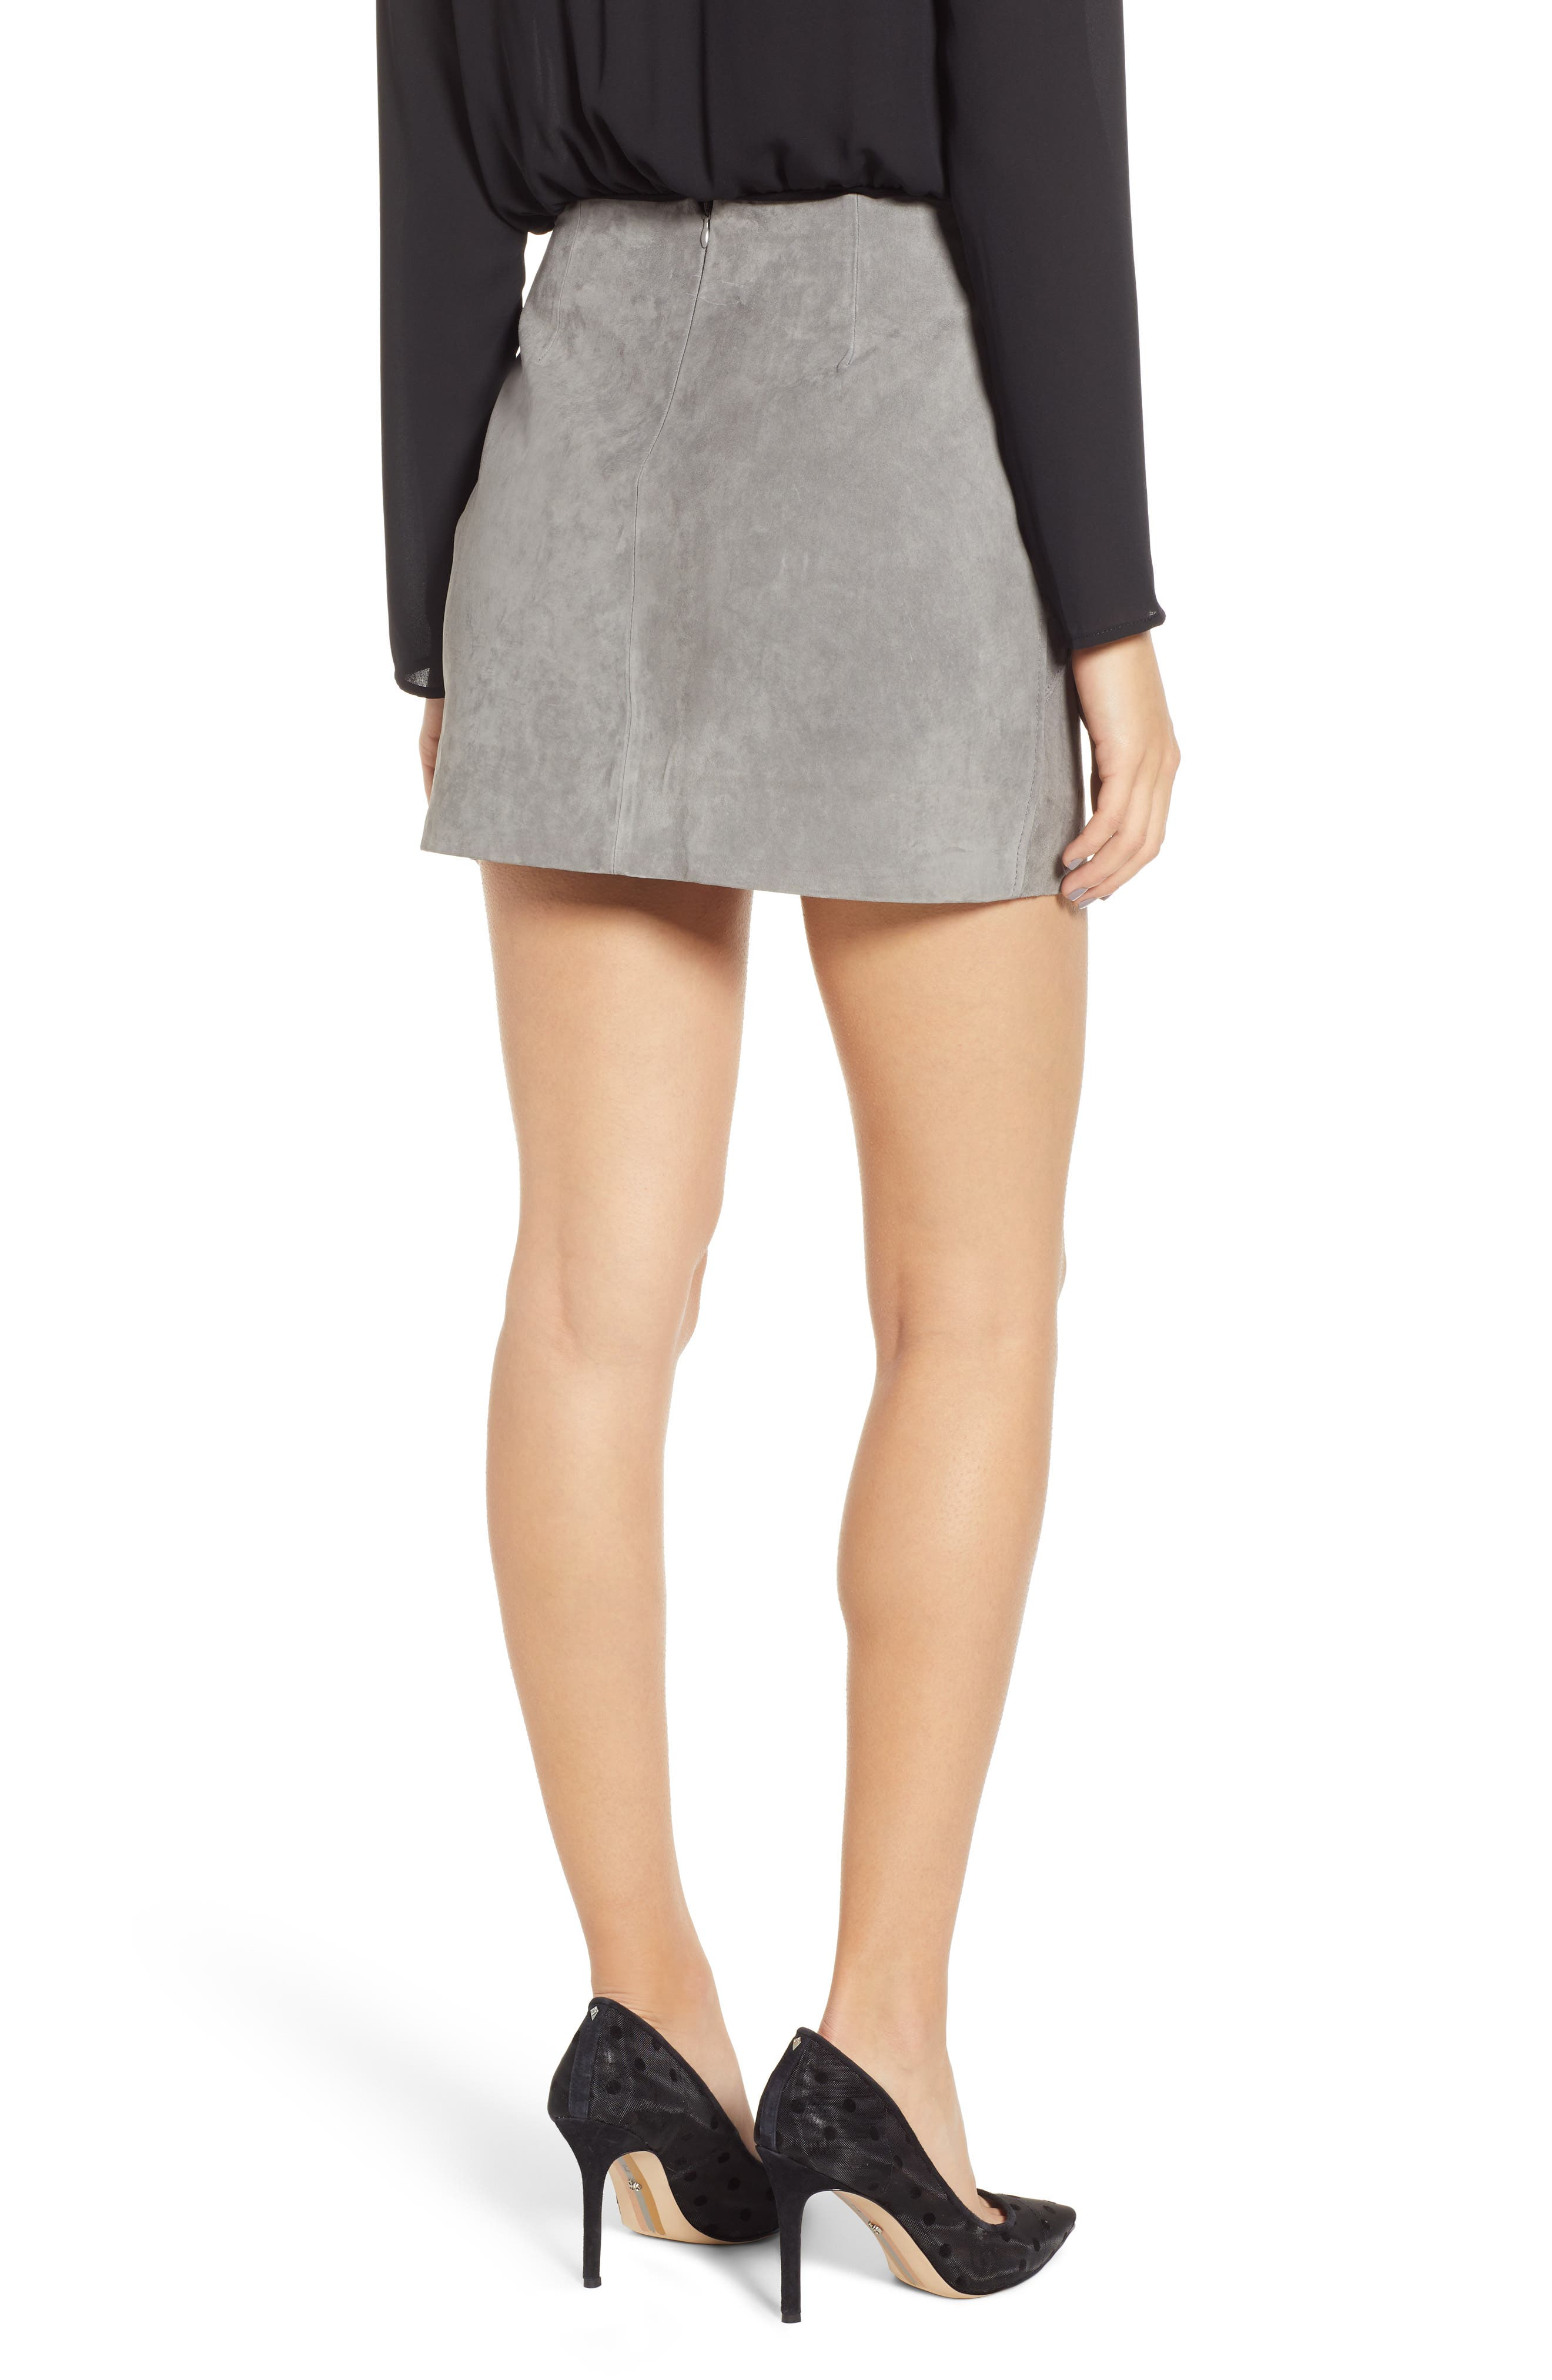 BLANKNYC, Lace-Up Suede Miniskirt, Alternate thumbnail 2, color, SOFT FOG